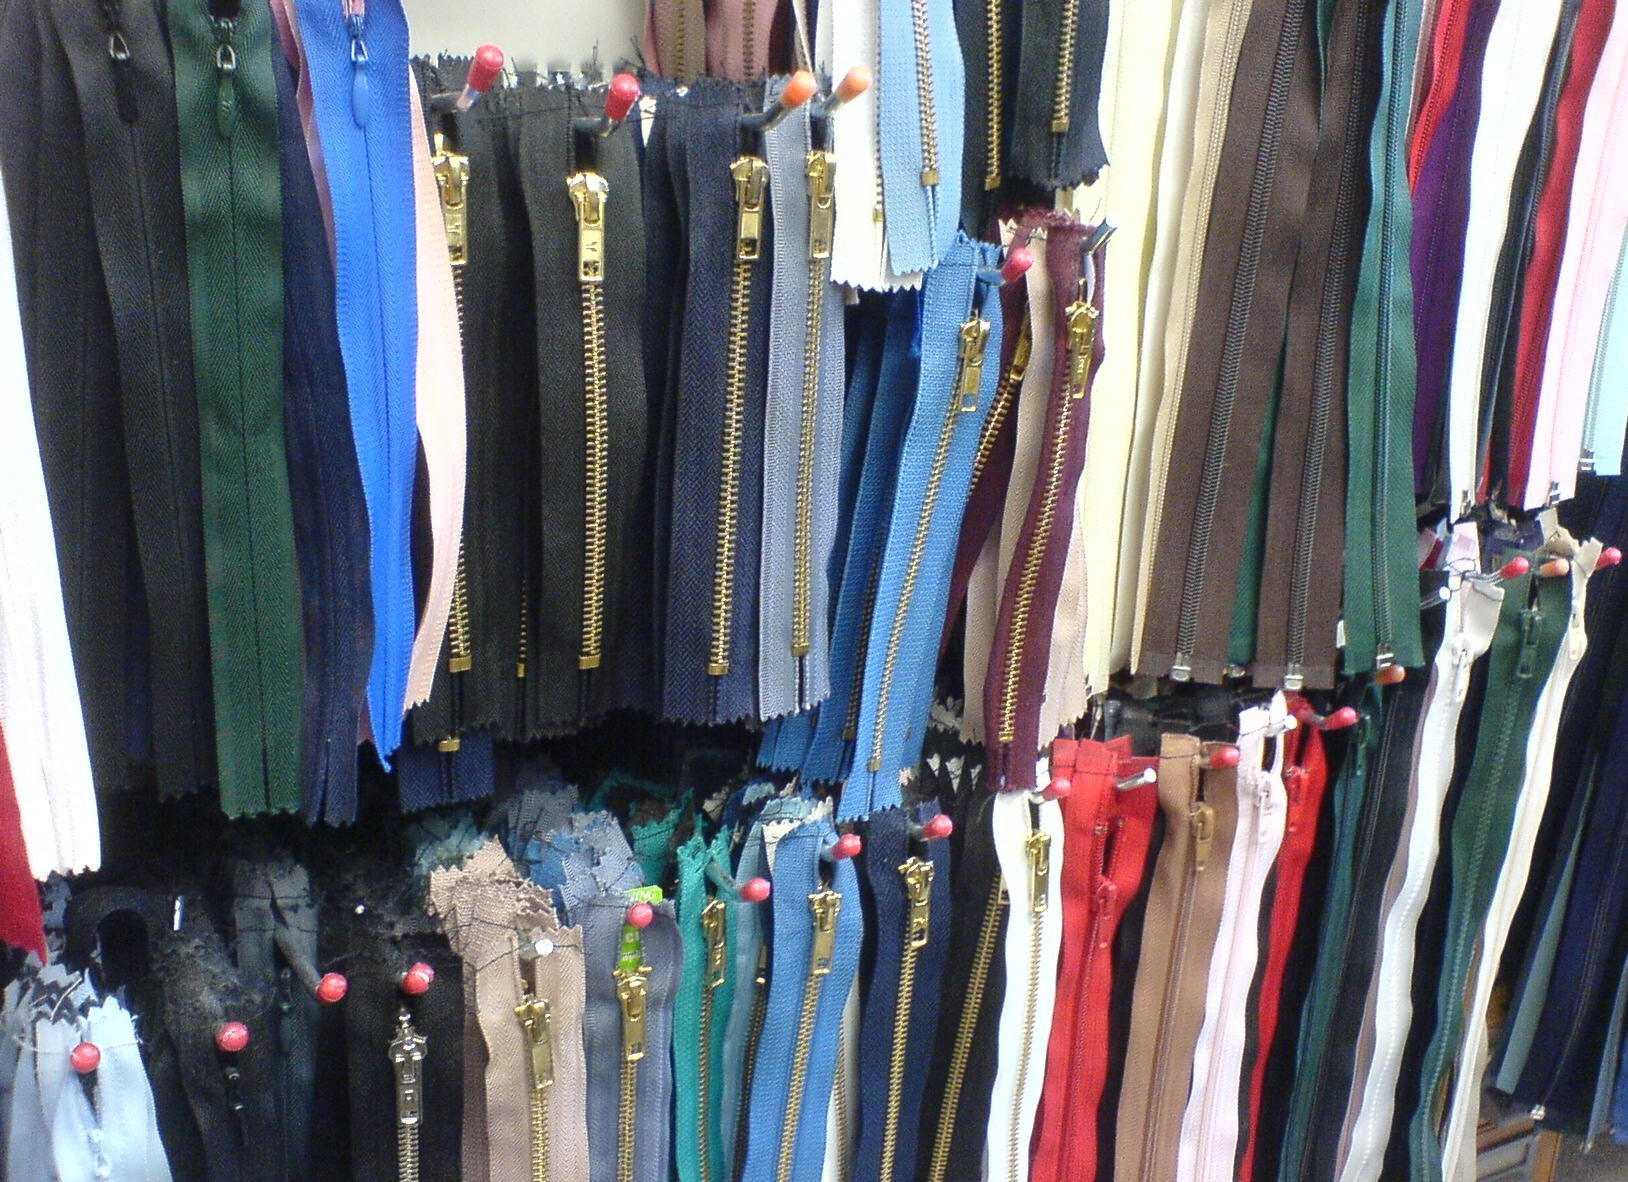 Zips on display in The Sewing Shop